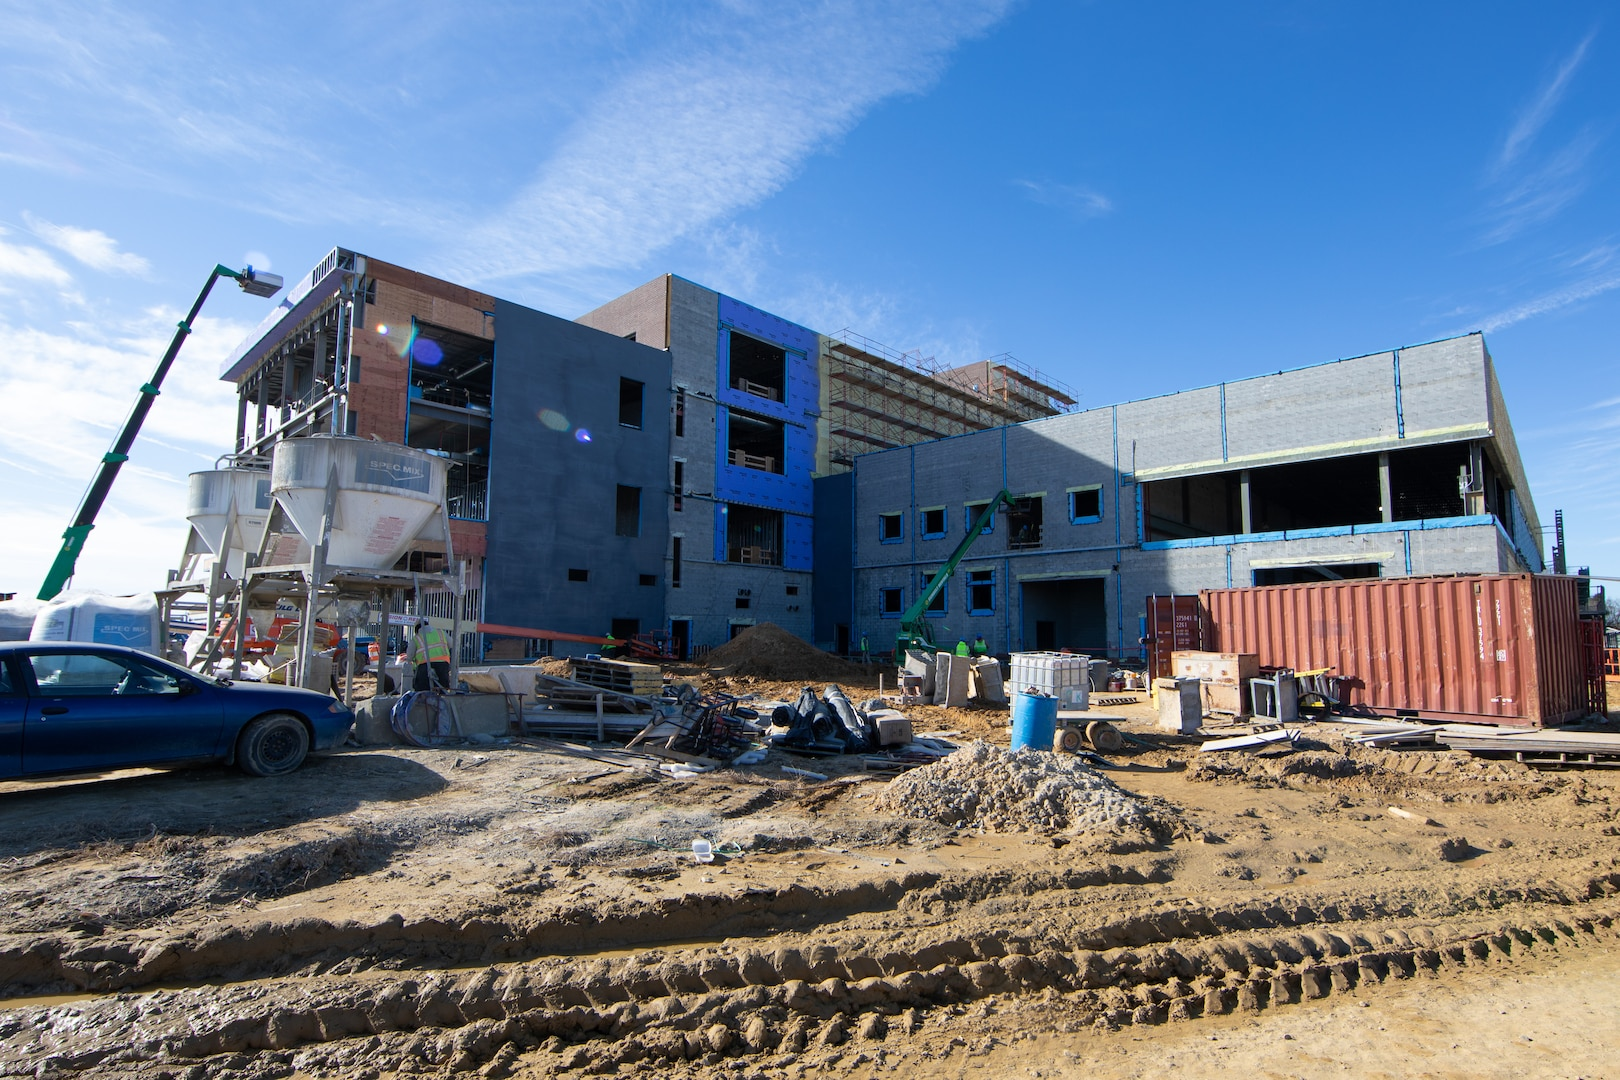 Norfolk Naval Shipyard's (NNSY) new multi-story, multifaceted training building marks the shipyard's biggest step yet in the realization of Naval Sea Systems Command's (NAVSEA) Shipyard Infrastructure Optimization Plan.